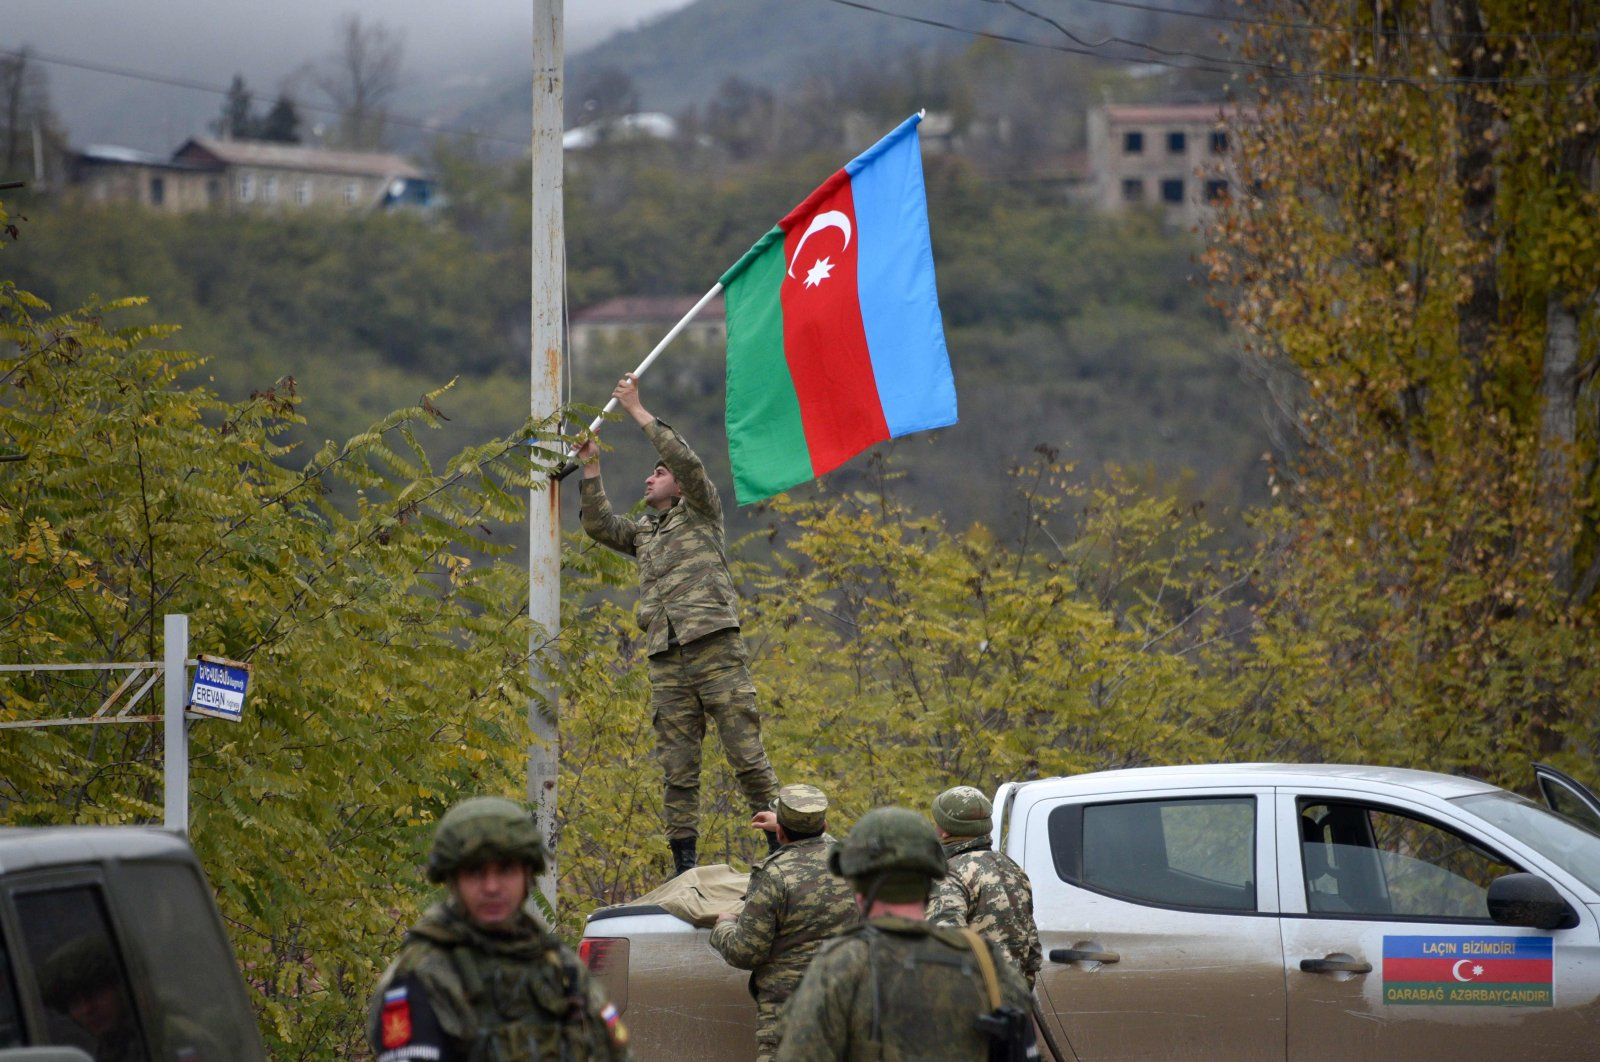 An Azerbaijani soldier affixes a national flag on a lamp post in the town of Lachin, Azerbaijan, Dec. 1, 2020. (AFP Photo)